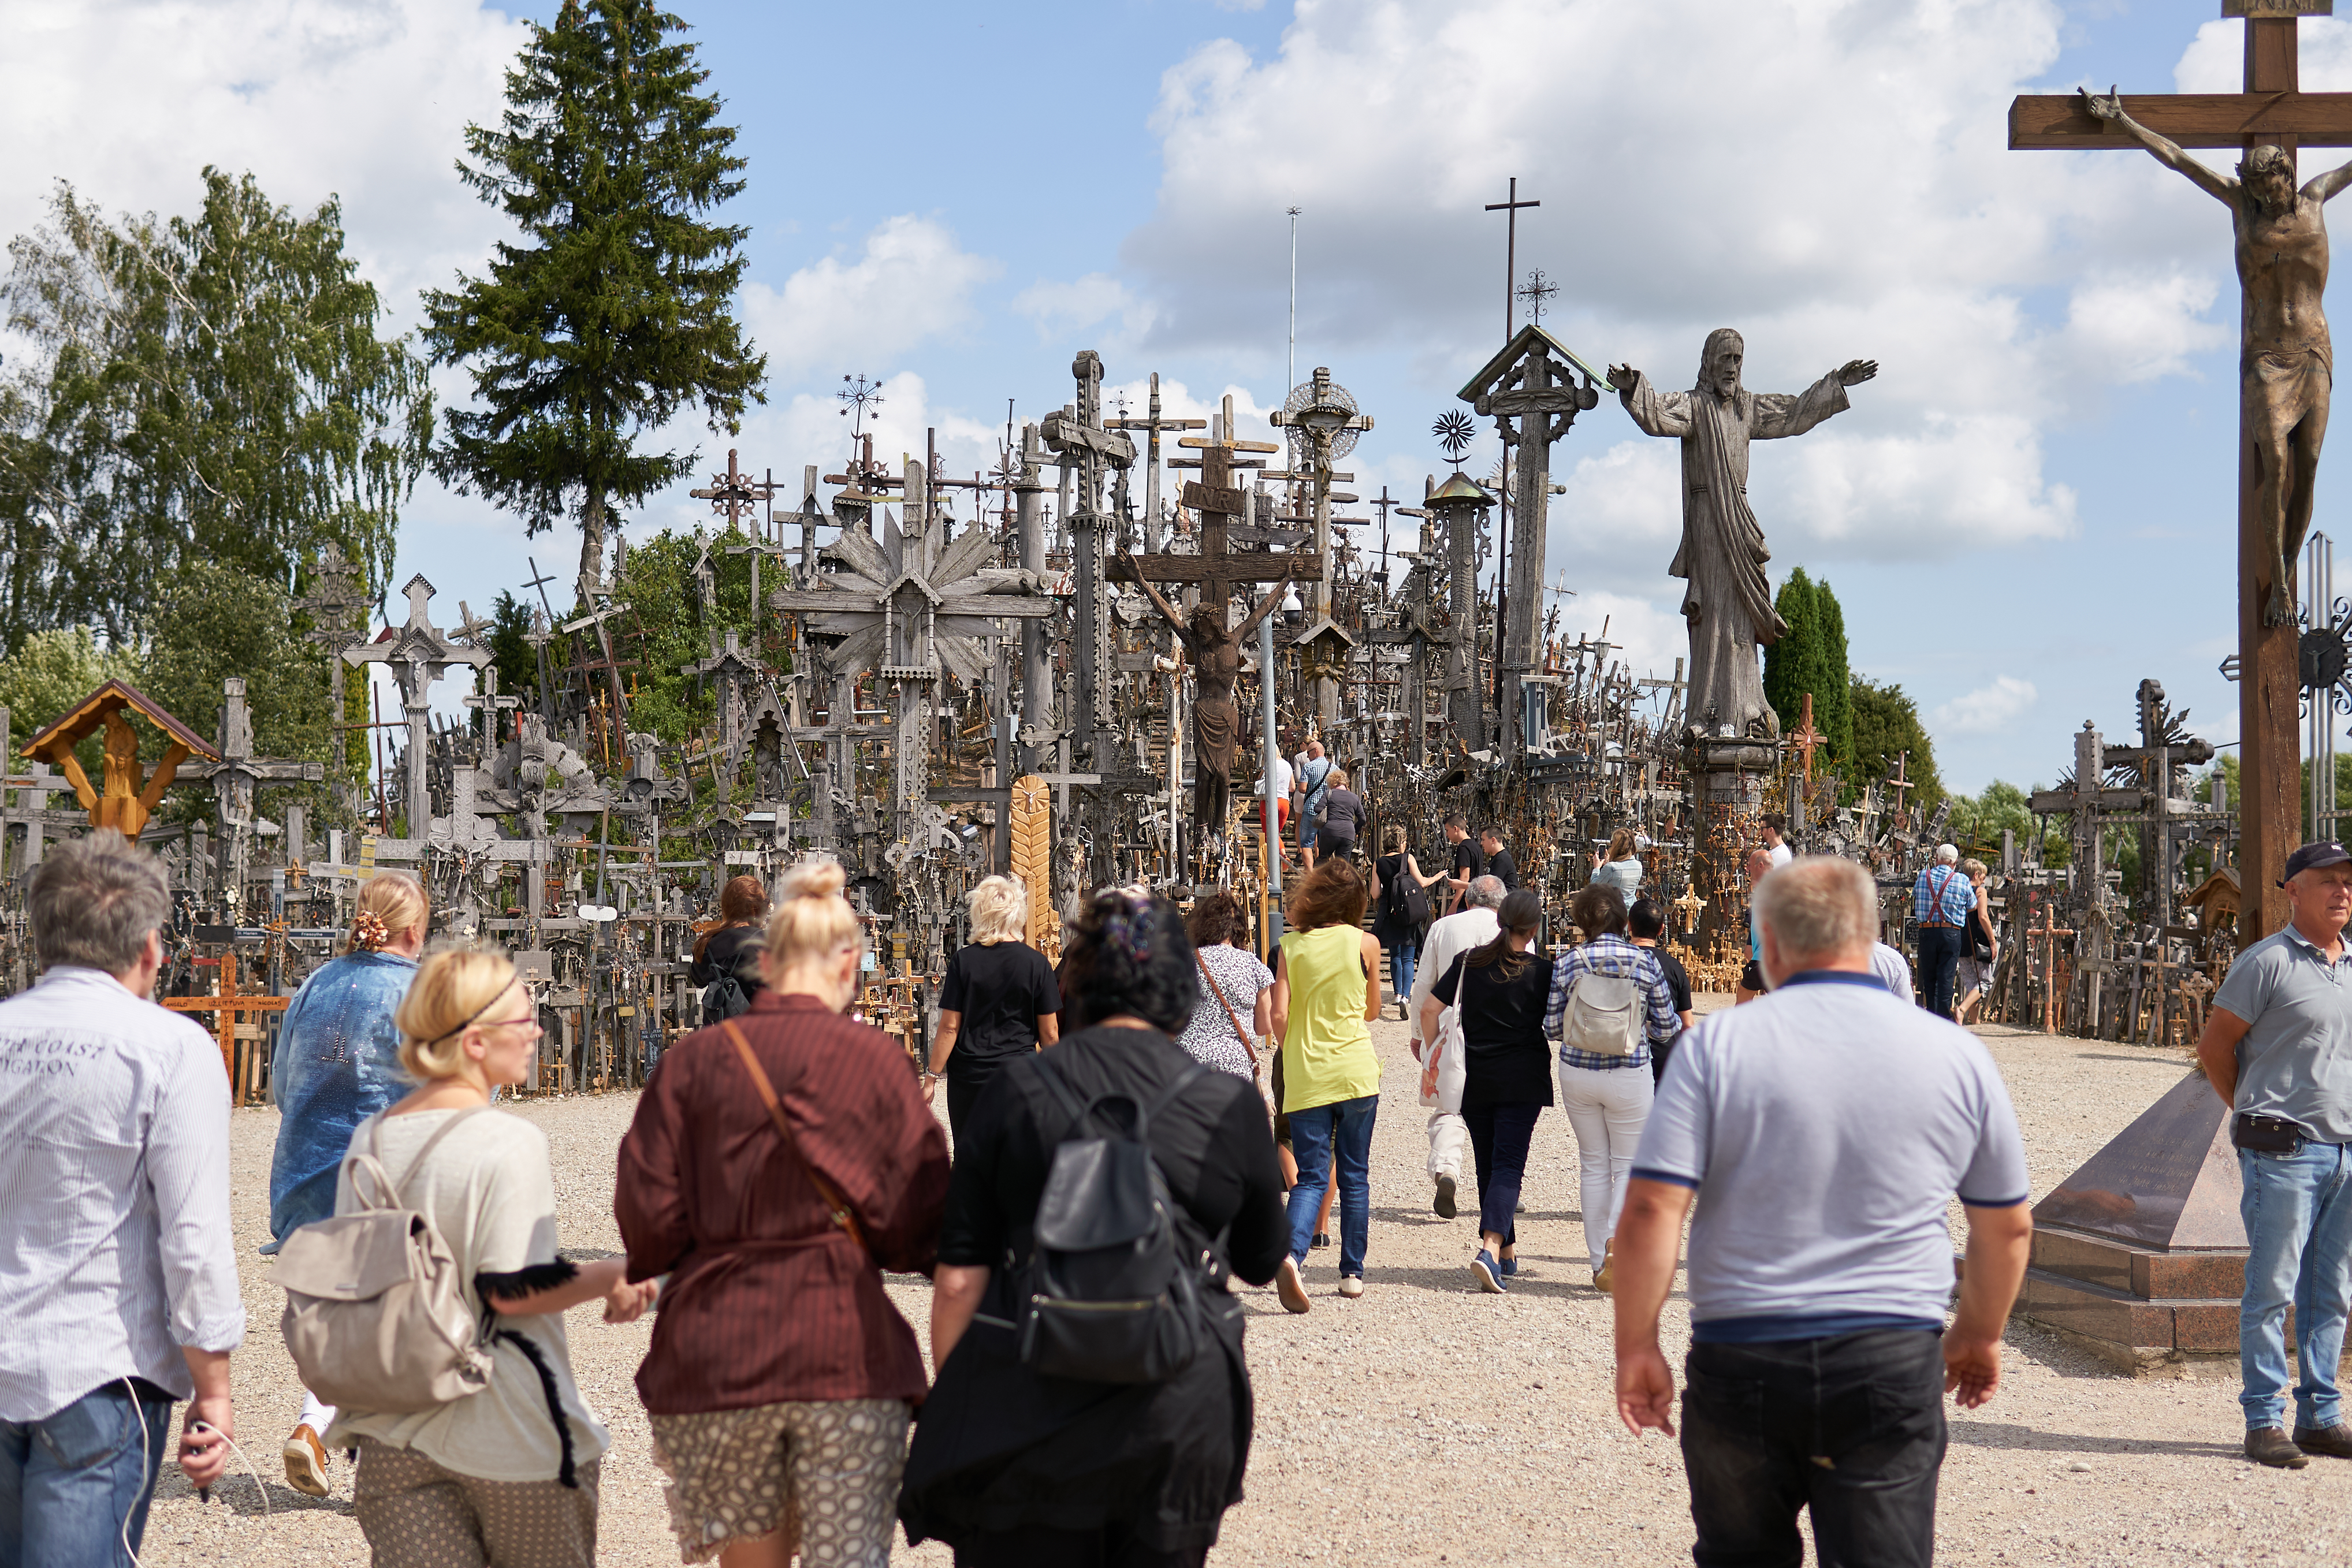 Hill of crosses and Joniškis tour